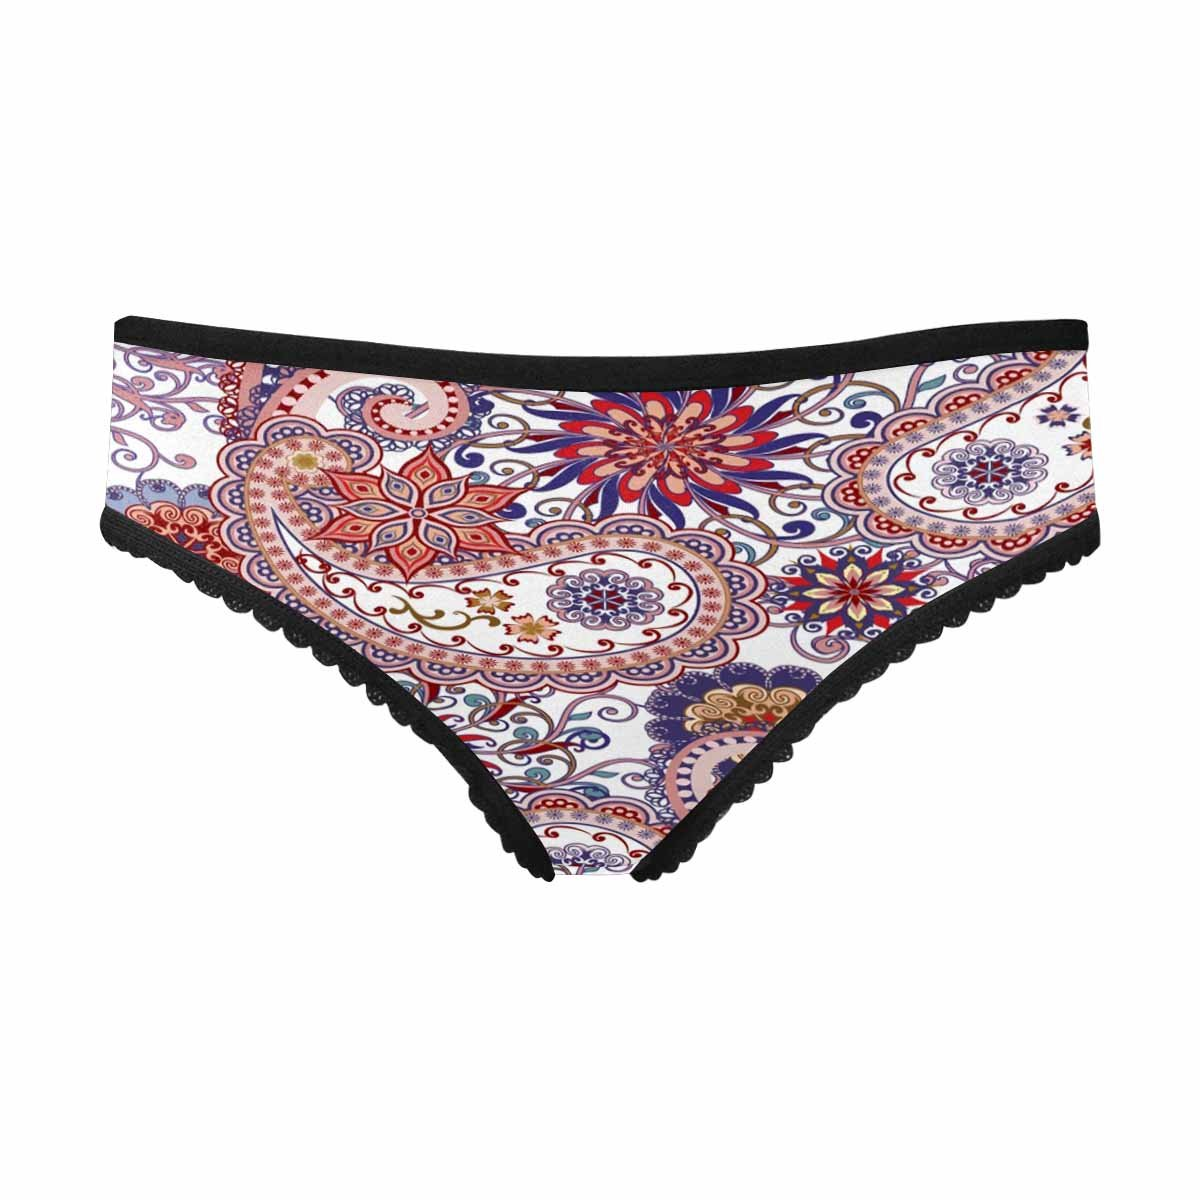 InterestPrint Women's Brief Panty Mandalas and Paisley Pattern in Indian Style S